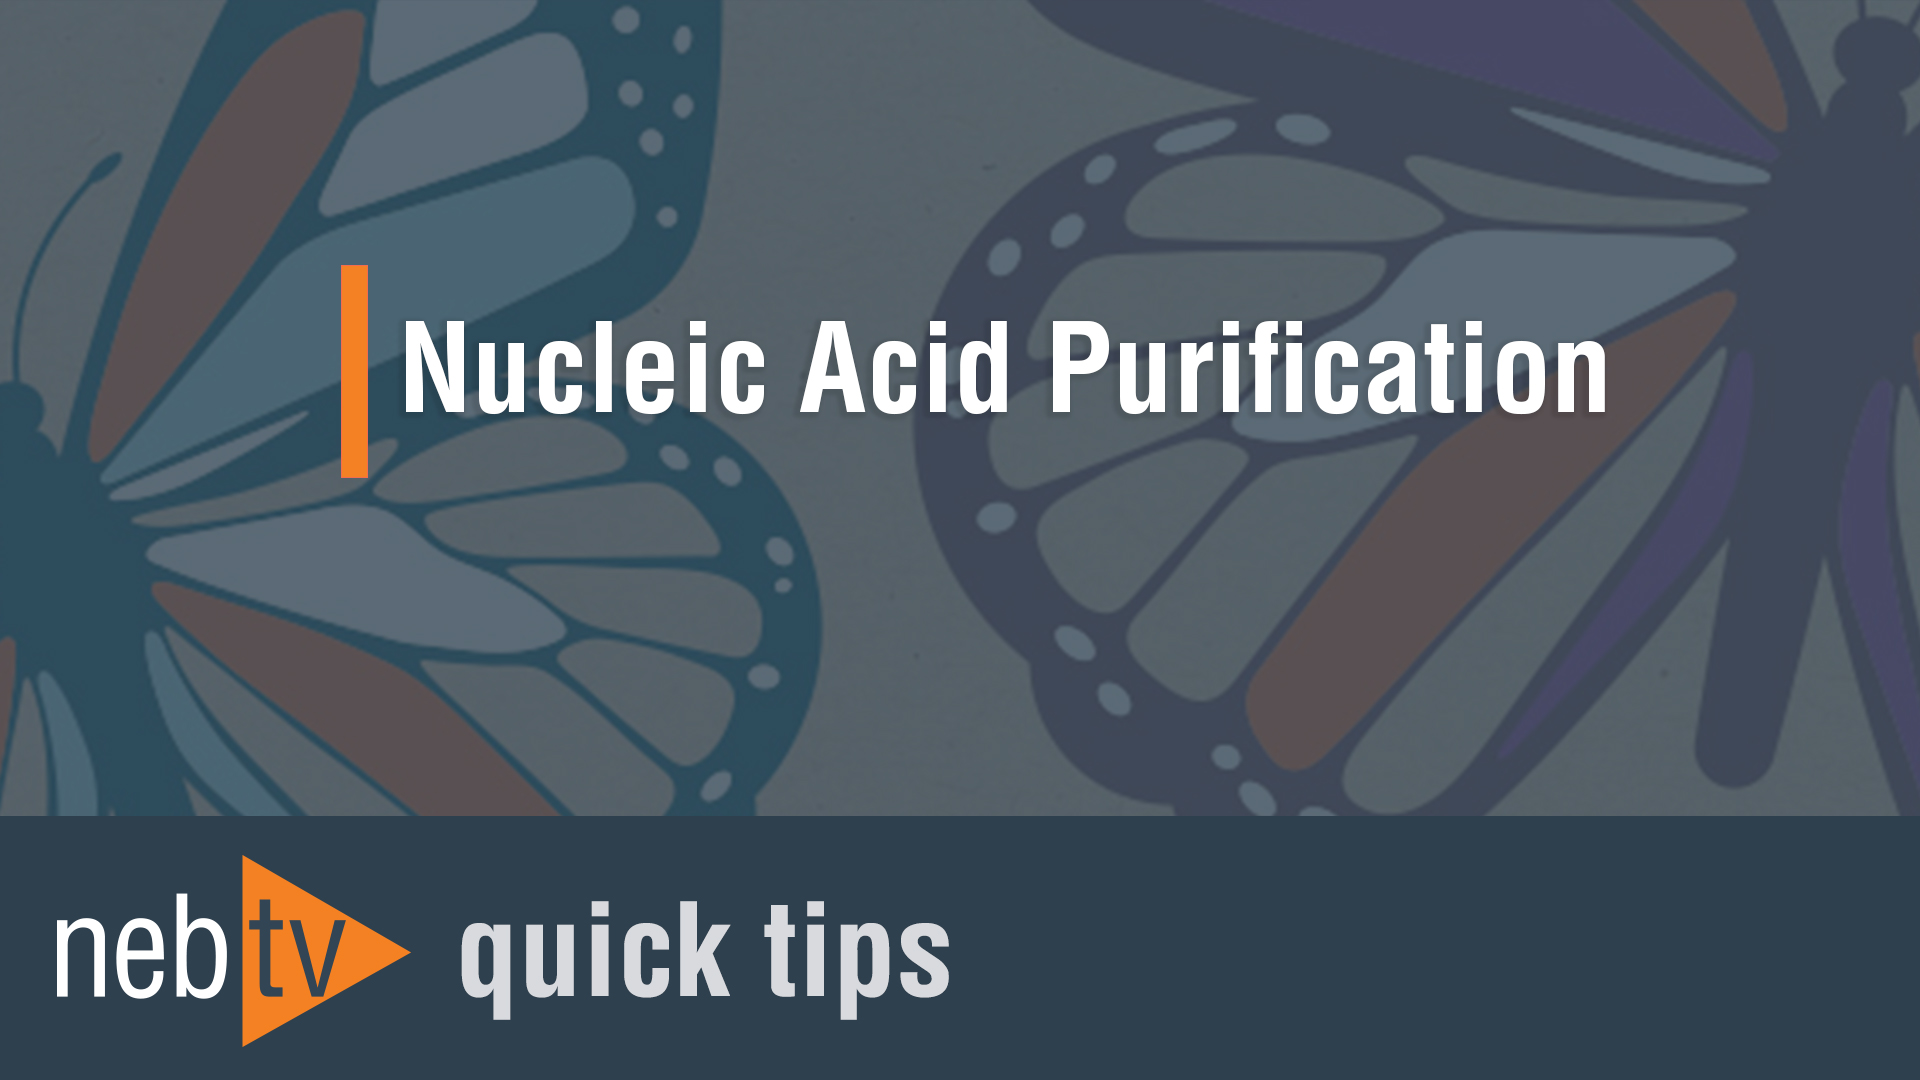 NEBTV_Nucleic-Acid-Purificatio_1920